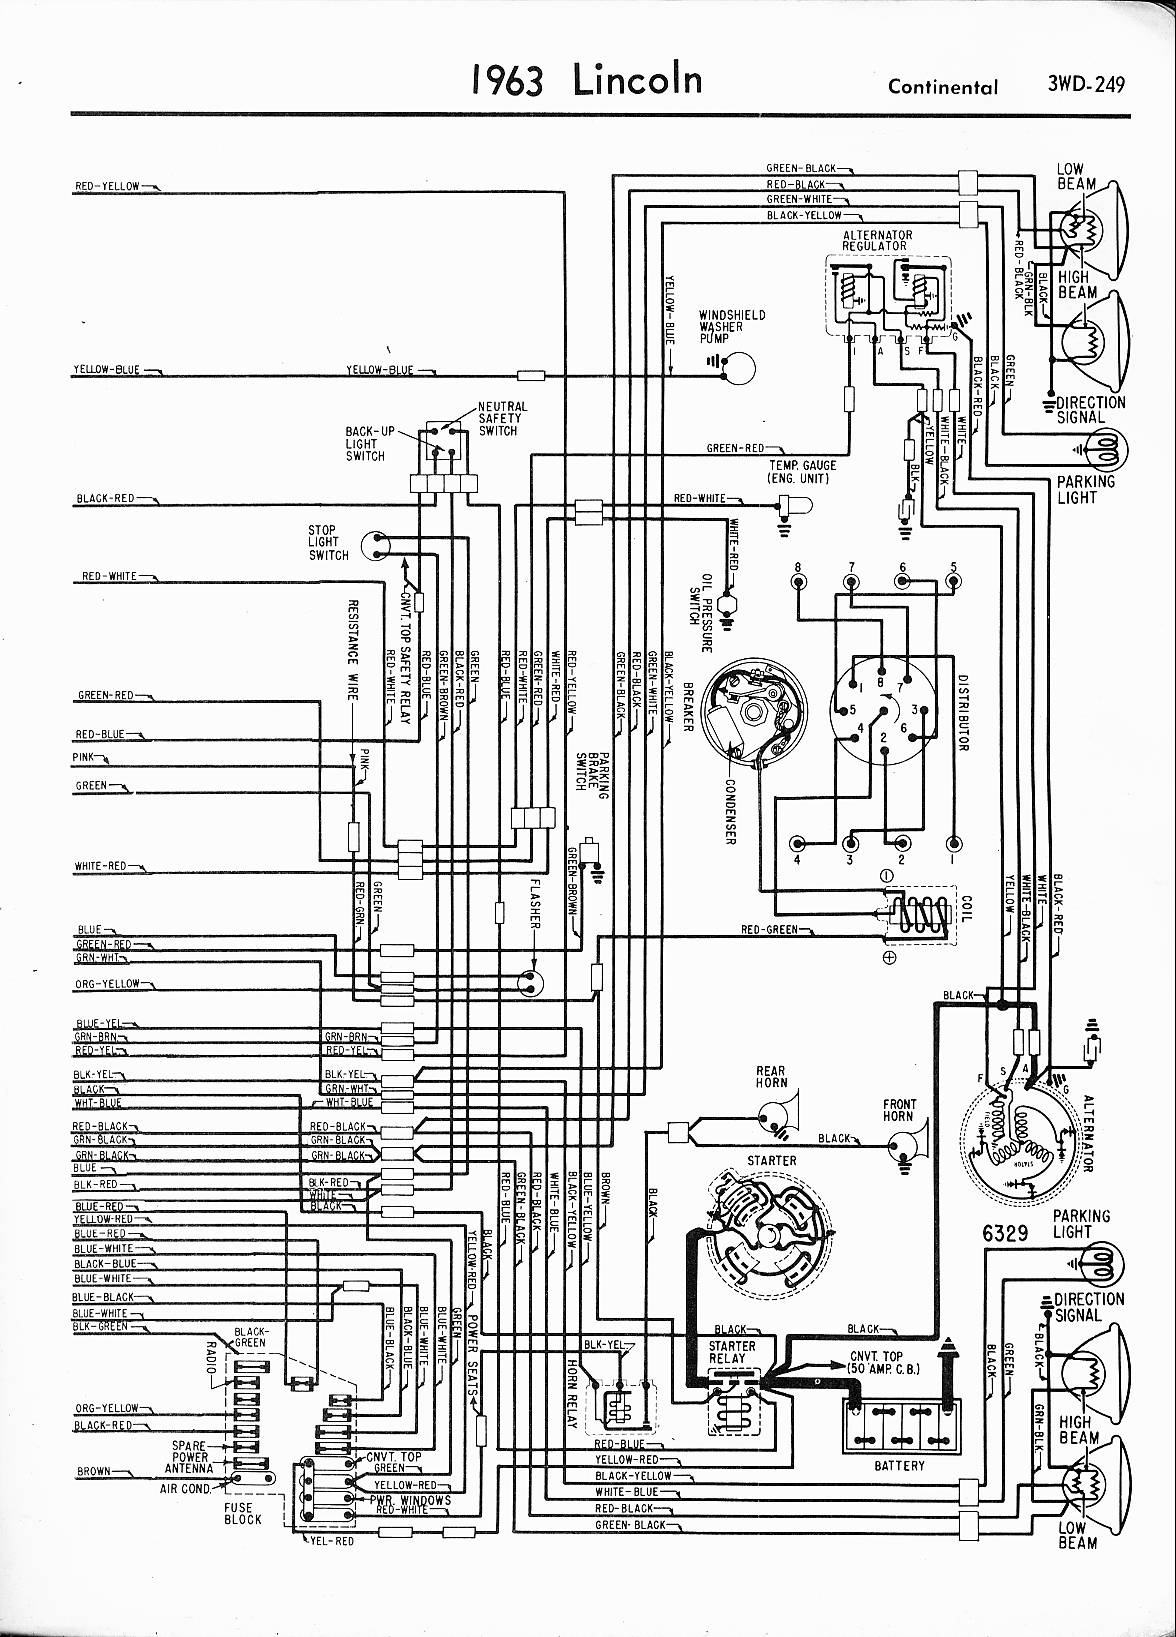 1964 Lincoln Vacuum Wiring Diagram Schematics Diagrams 1968 Honda Cb 1963 Continental U2022 Rh Parntesis Co 1965